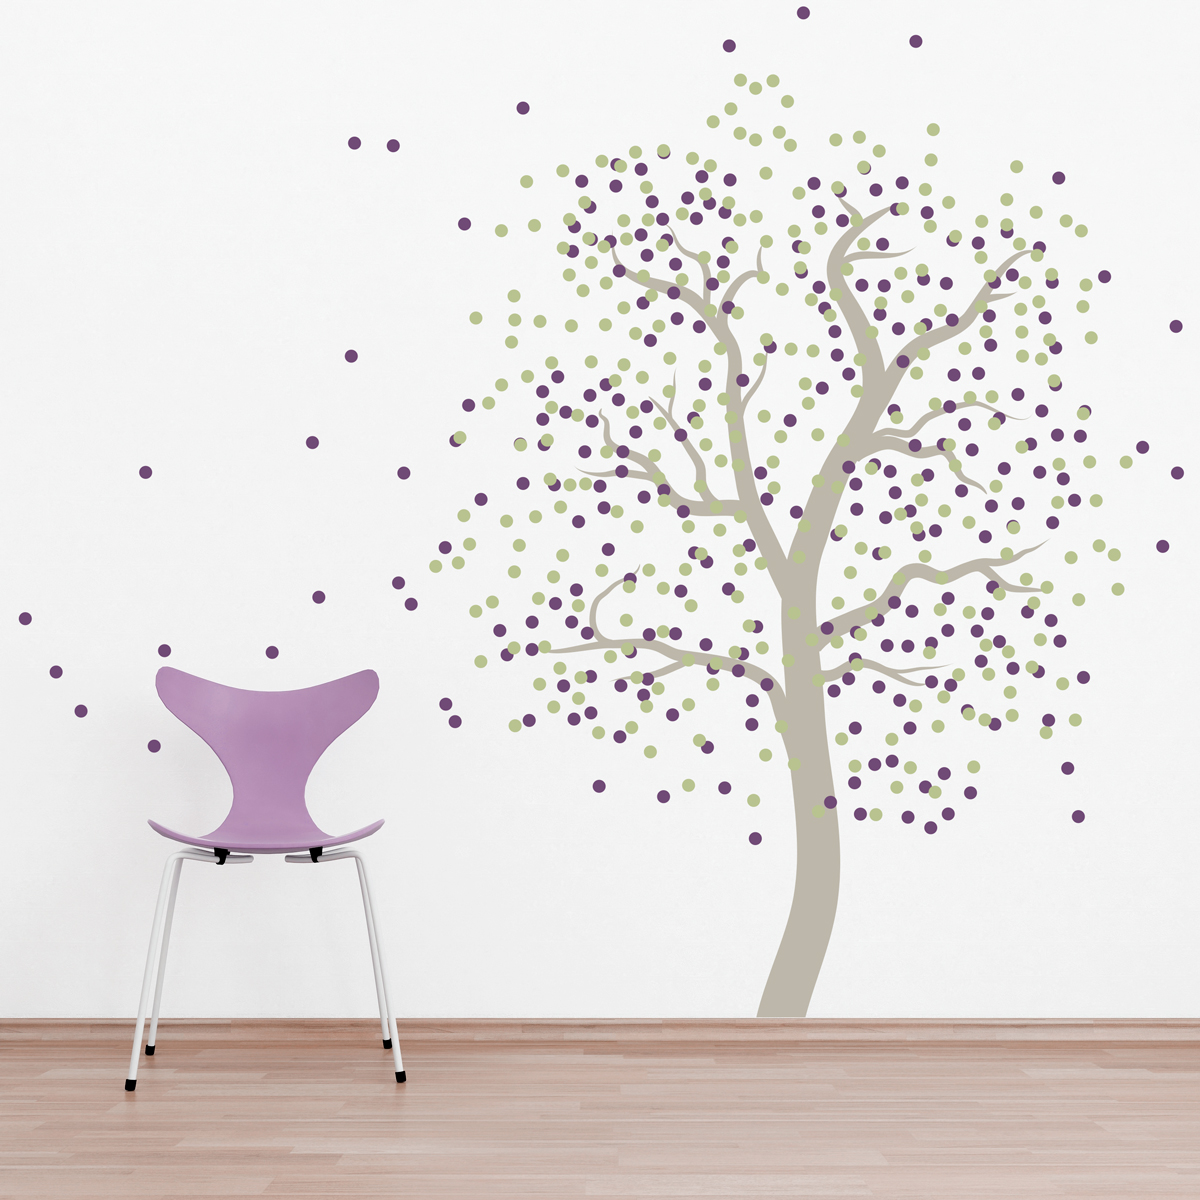 Confetti Tree Wall Decal - Wall decals